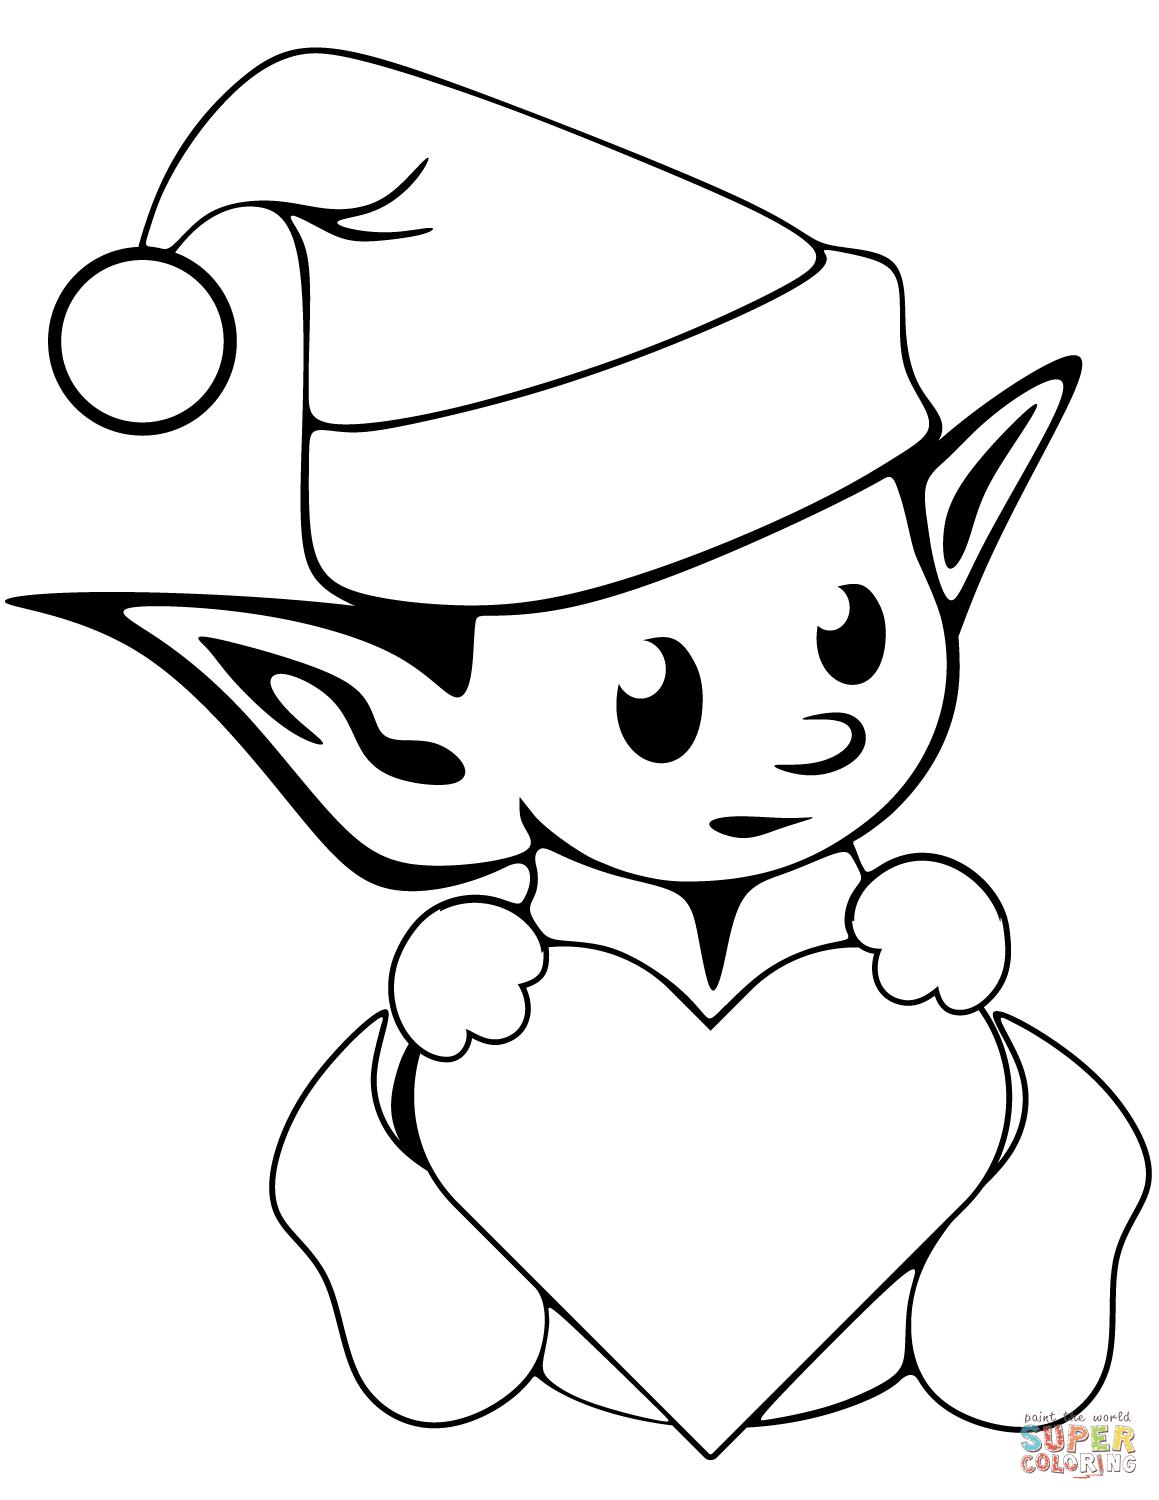 Adorable image pertaining to elf coloring pages printable